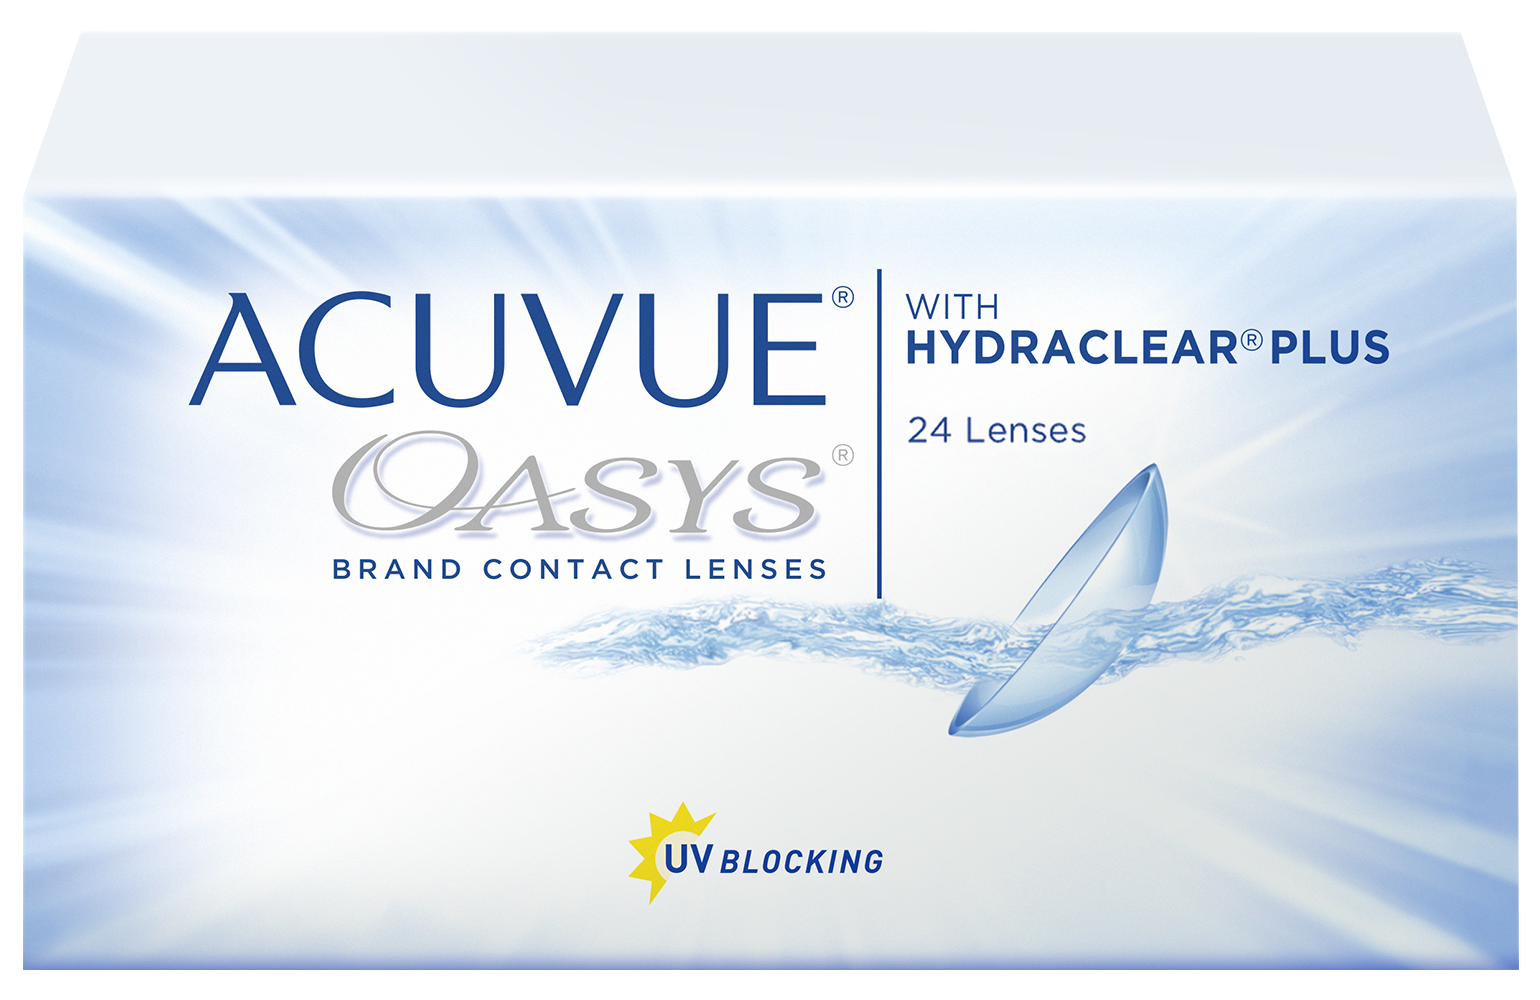 Линзы Acuvue Oasys With Hedraclear